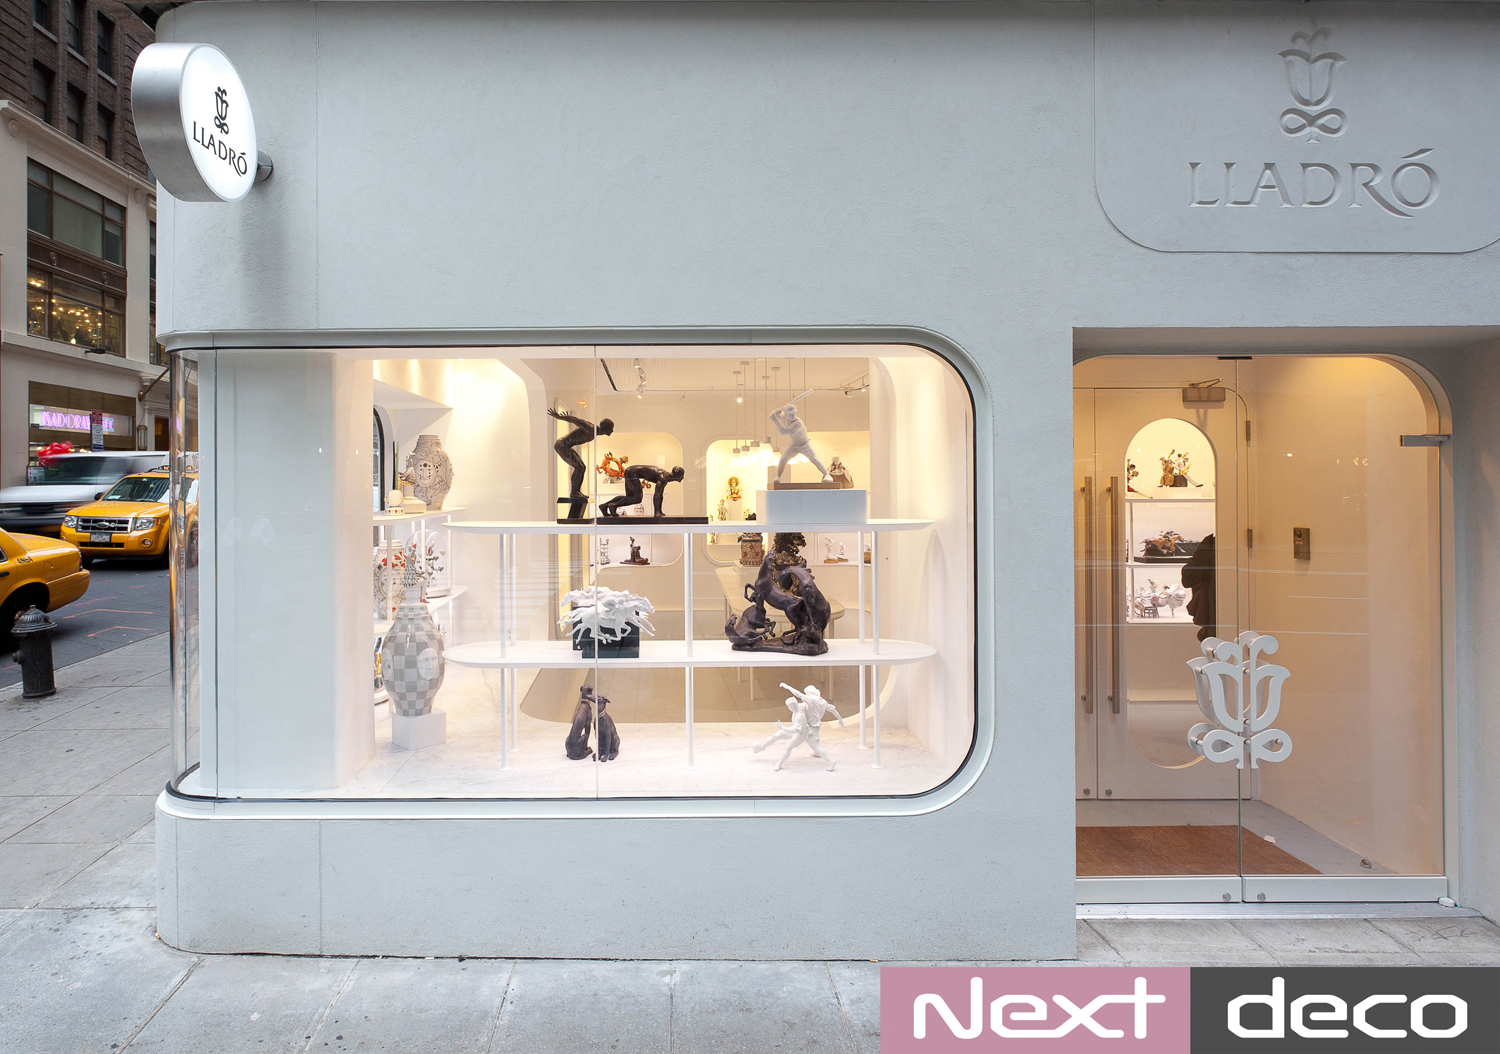 figuras-porcelana-lladro-tienda-nyc-madison-nextdeco copia